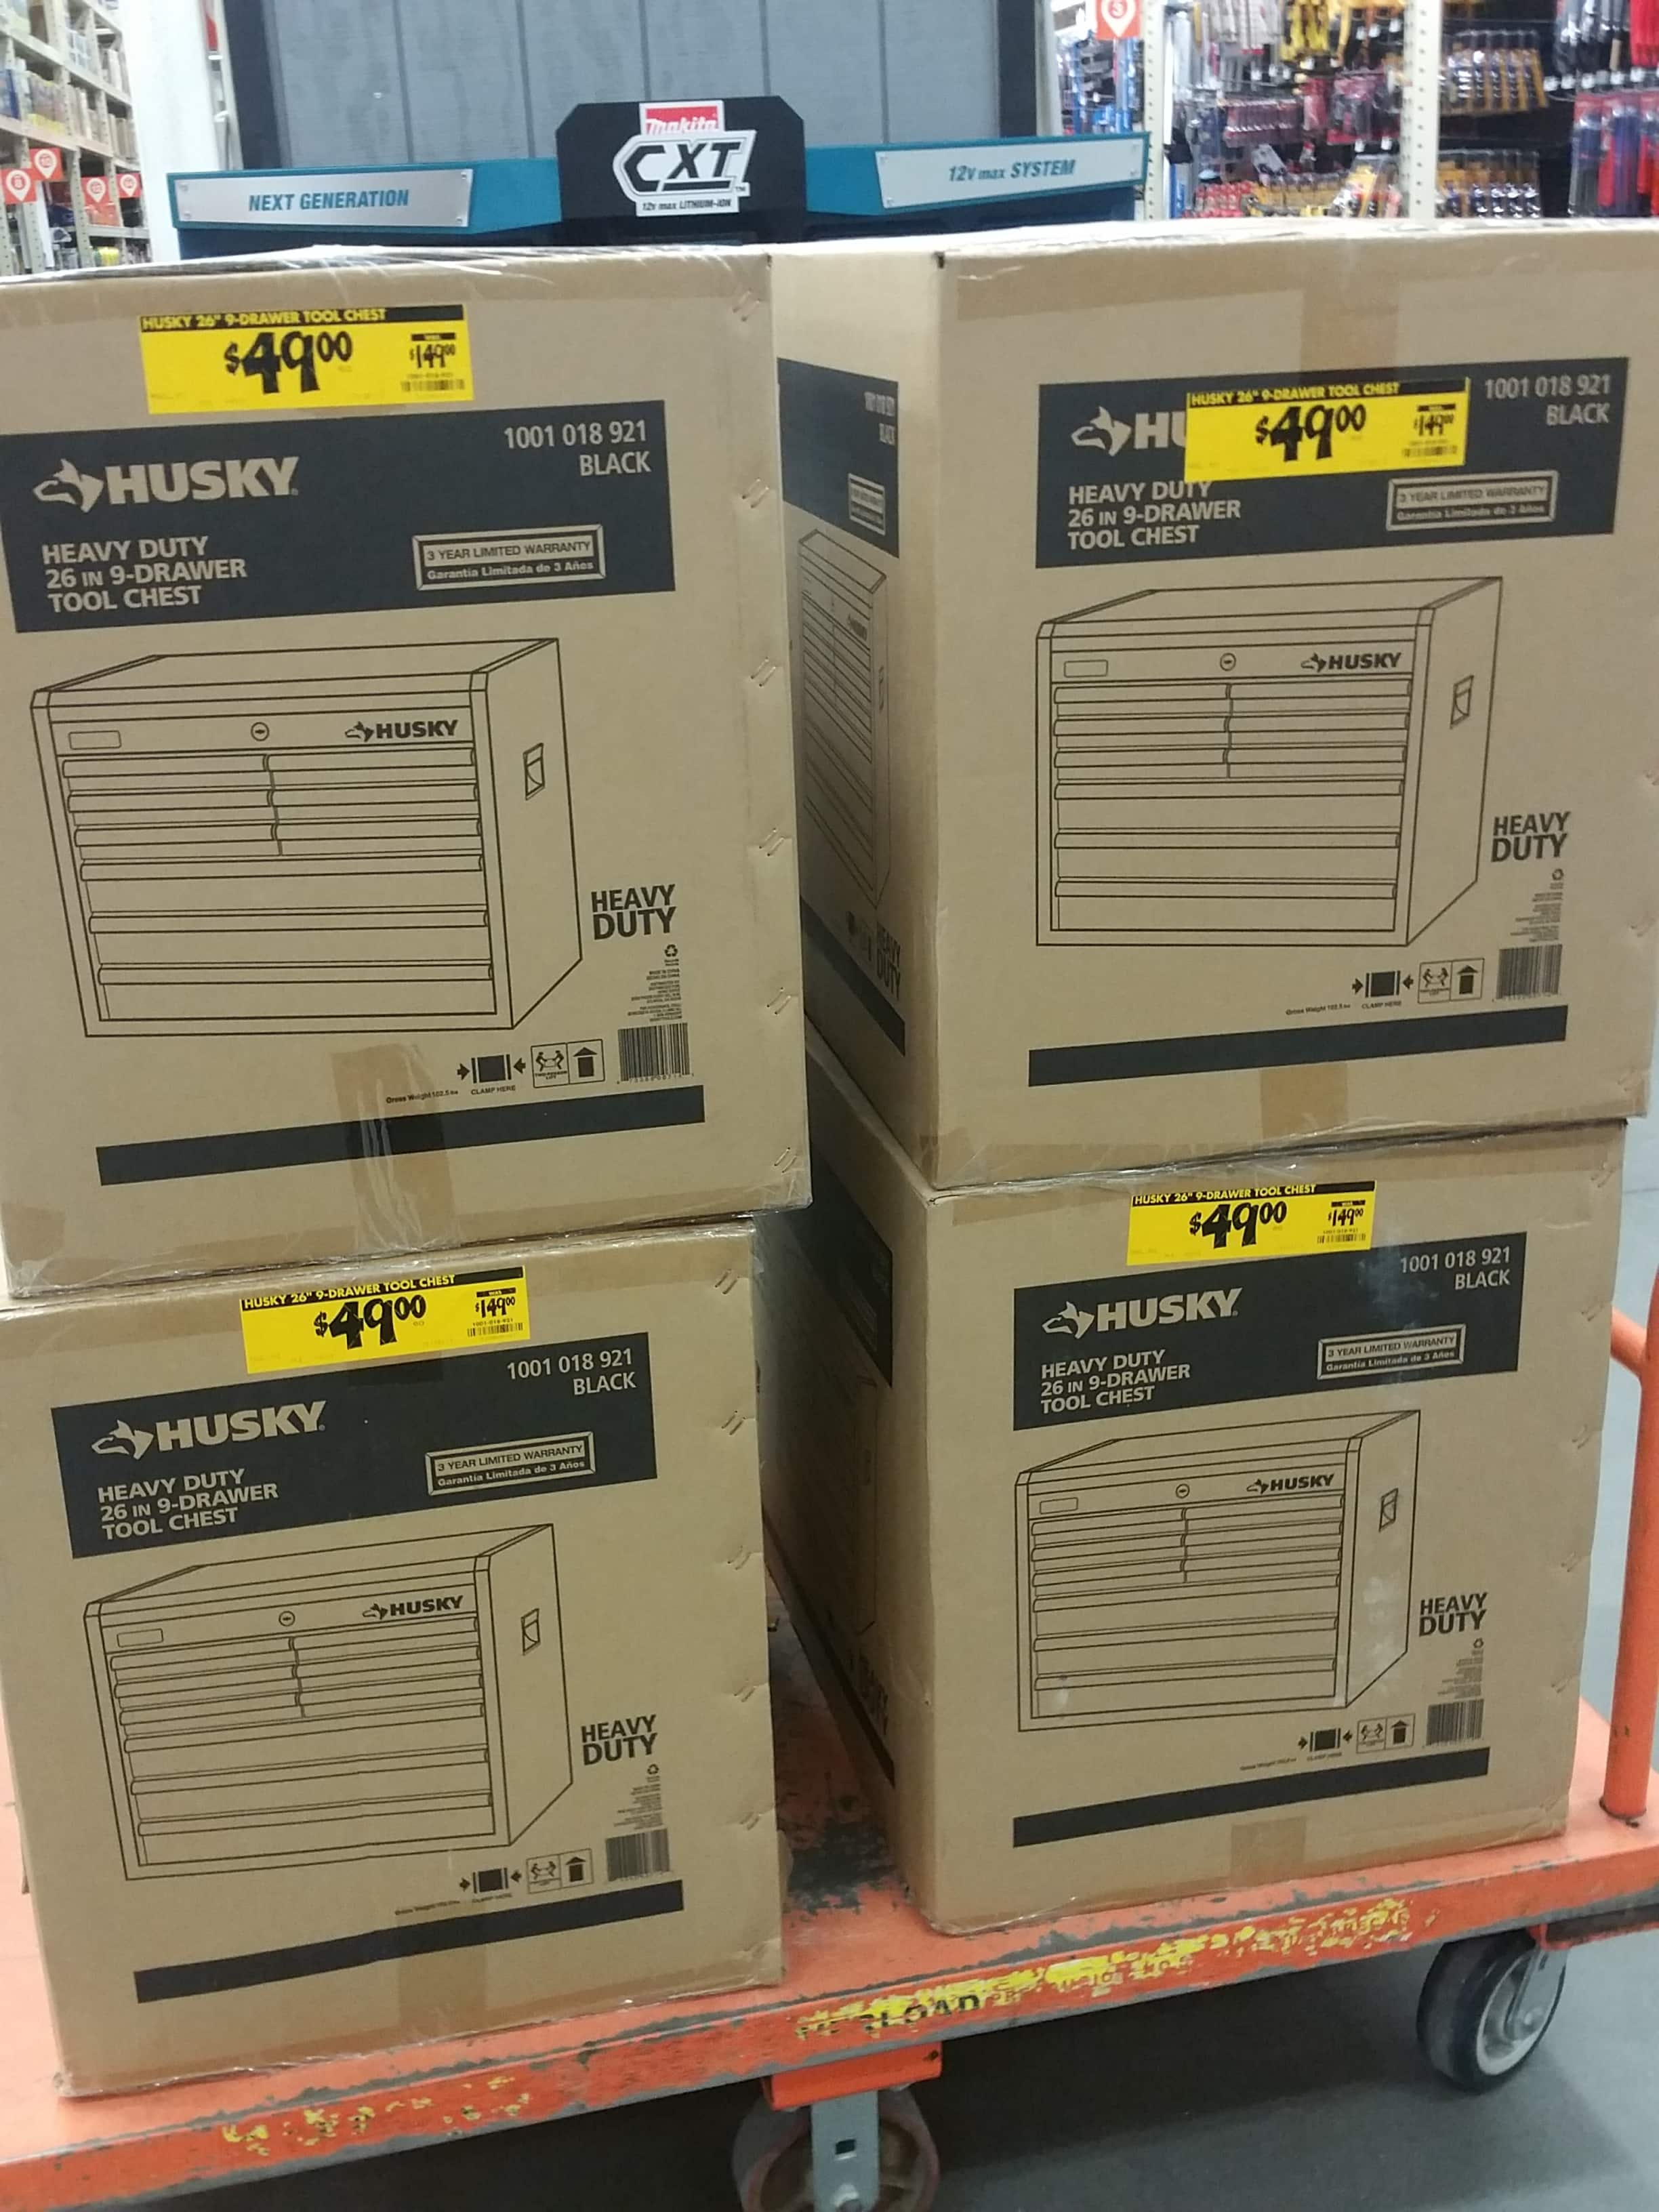 Husky heavy duty 26in 9 drawer tool chest $49 home depot b&m ymmv